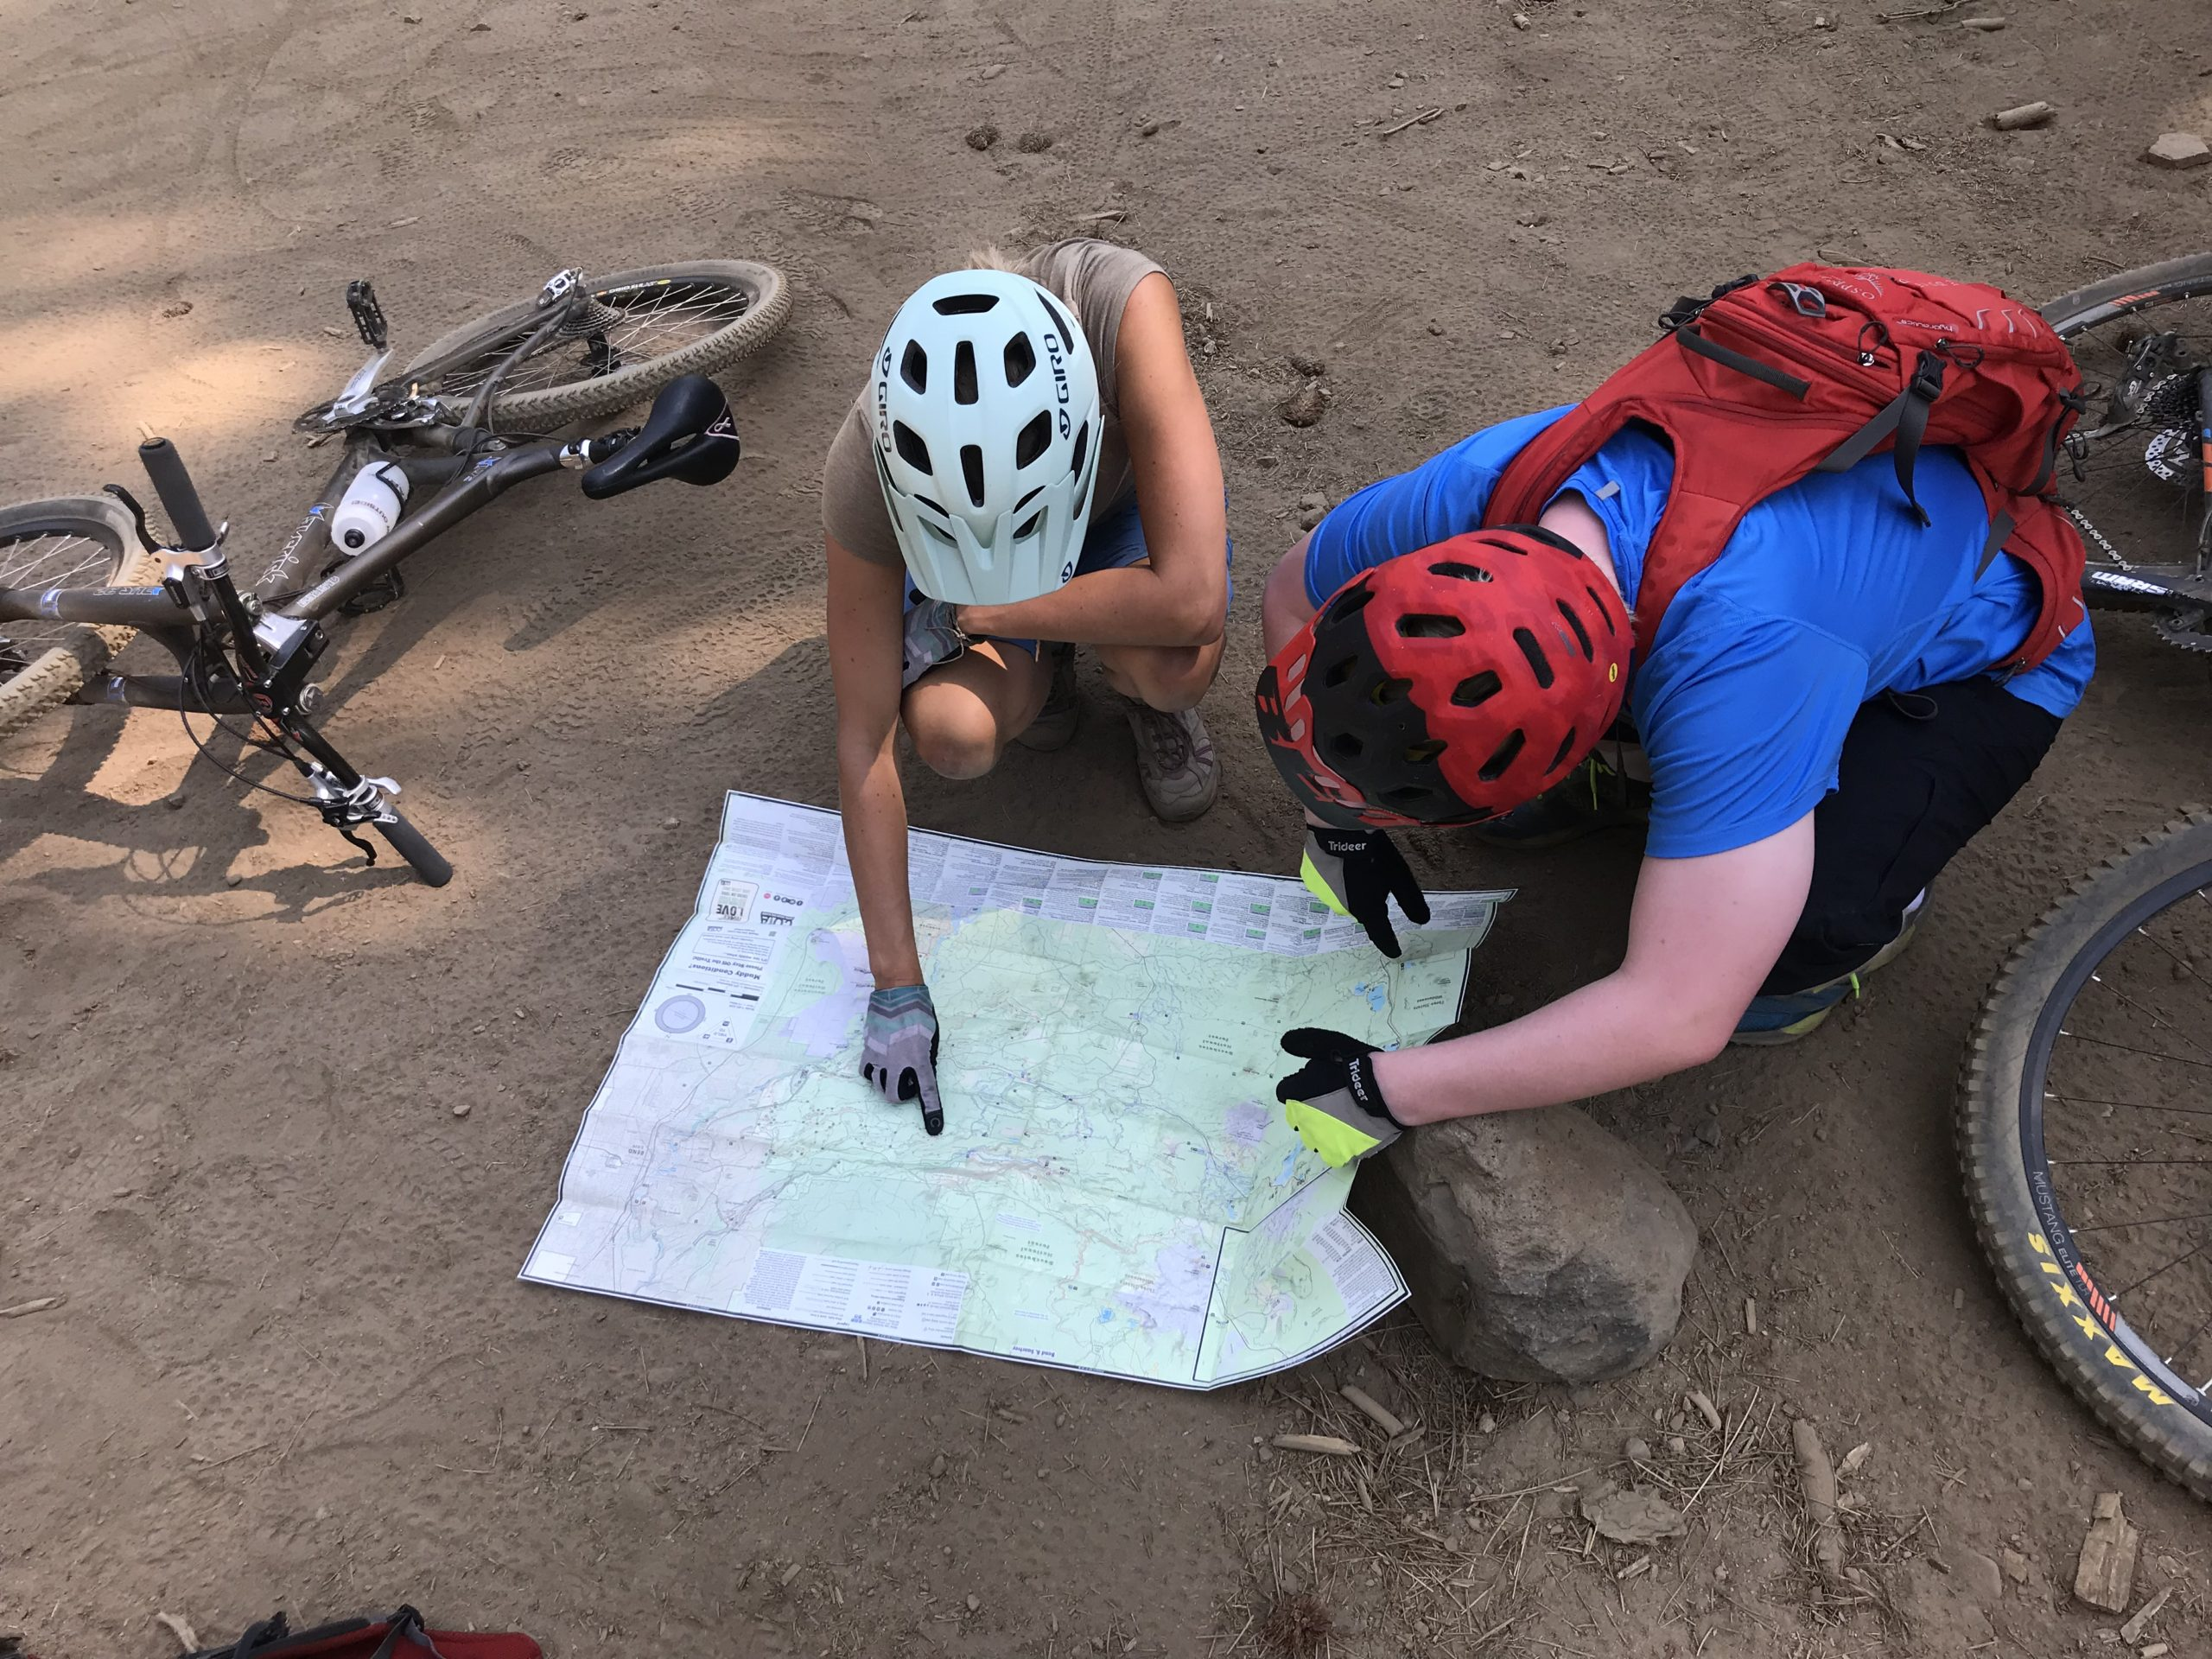 two cyclists with a map on the floor pointing to different points